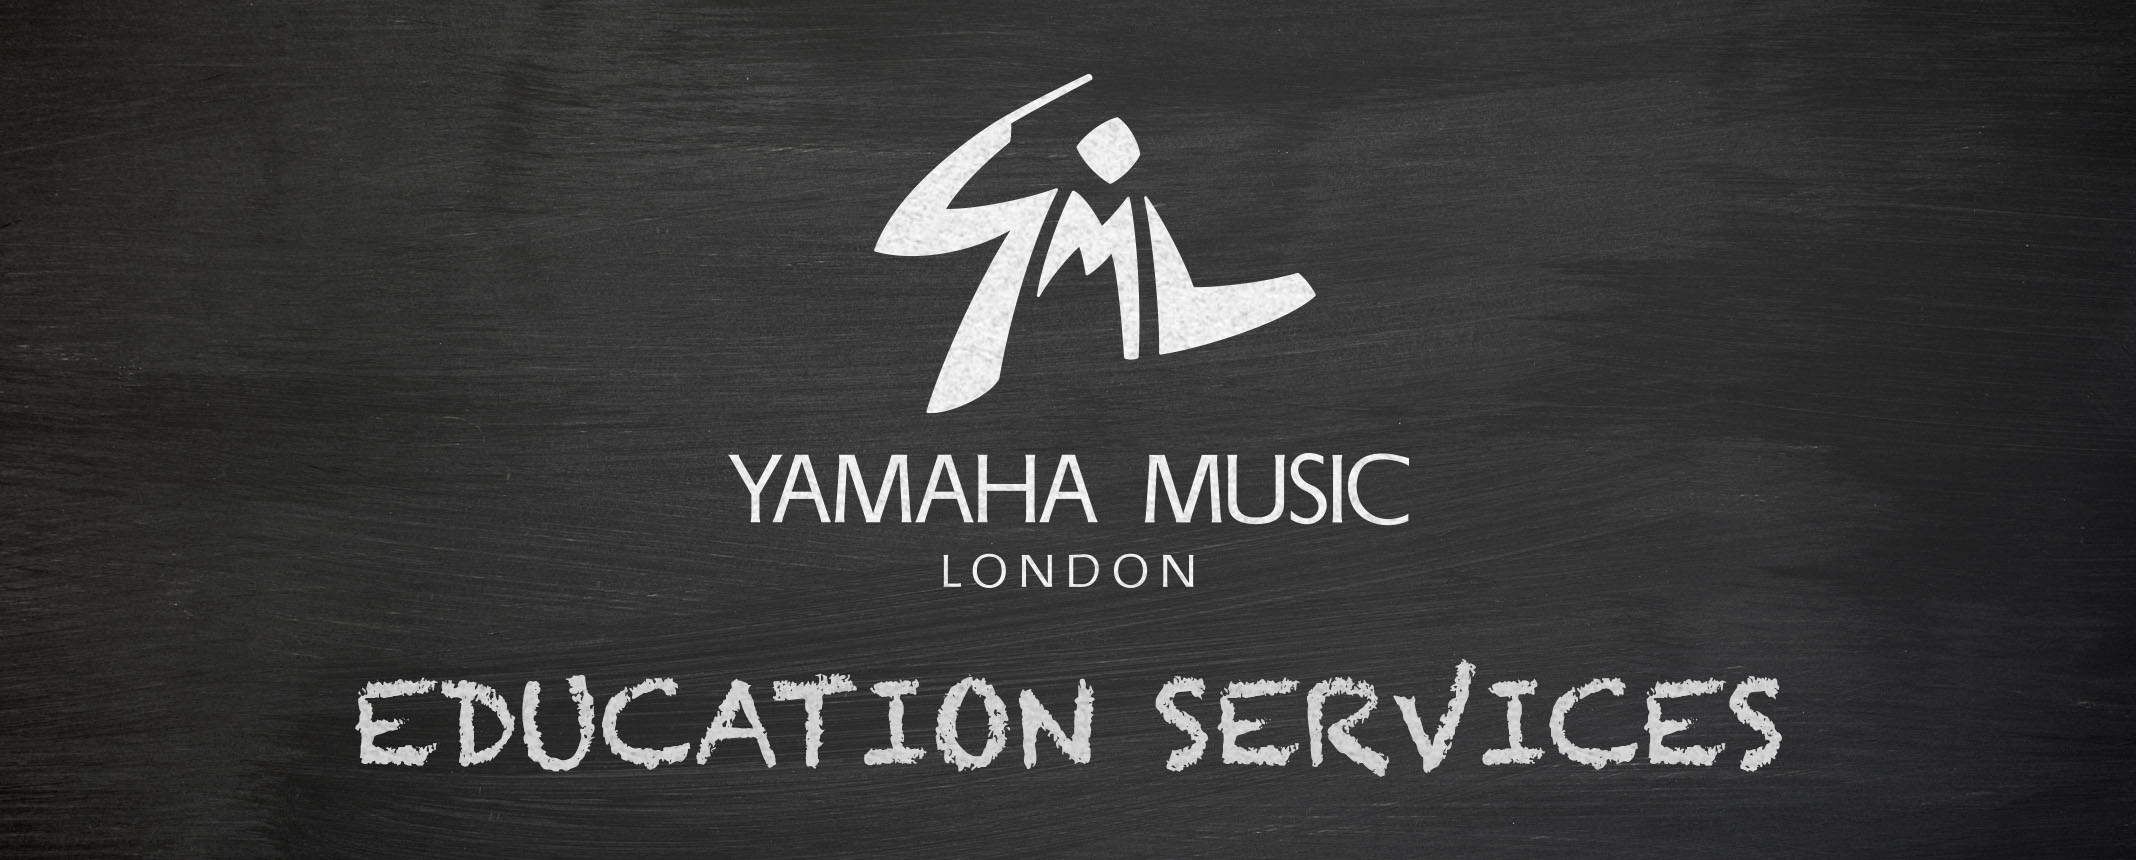 Yamaha Music London Education Services